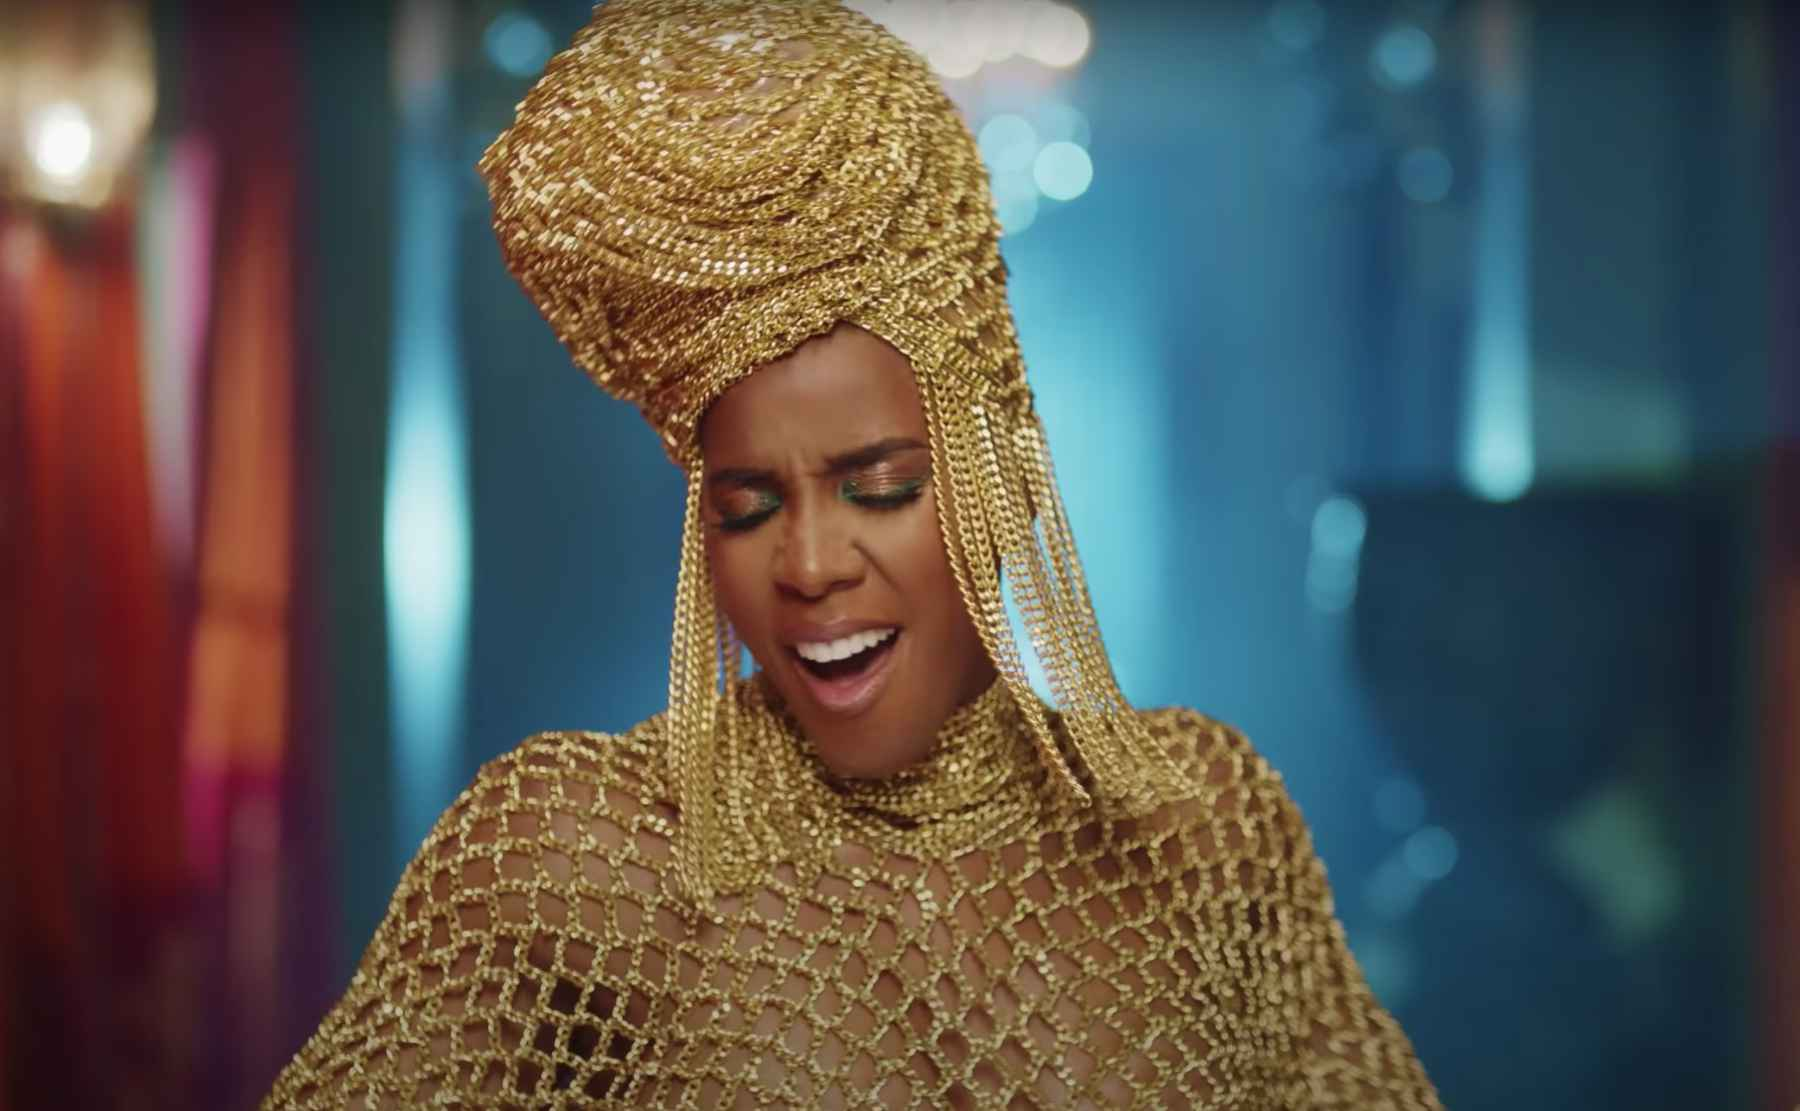 We Need To Talk About Kelly Kelly Rowland's Hitman is the Touchdown of the NFL's Songs of the Season Series